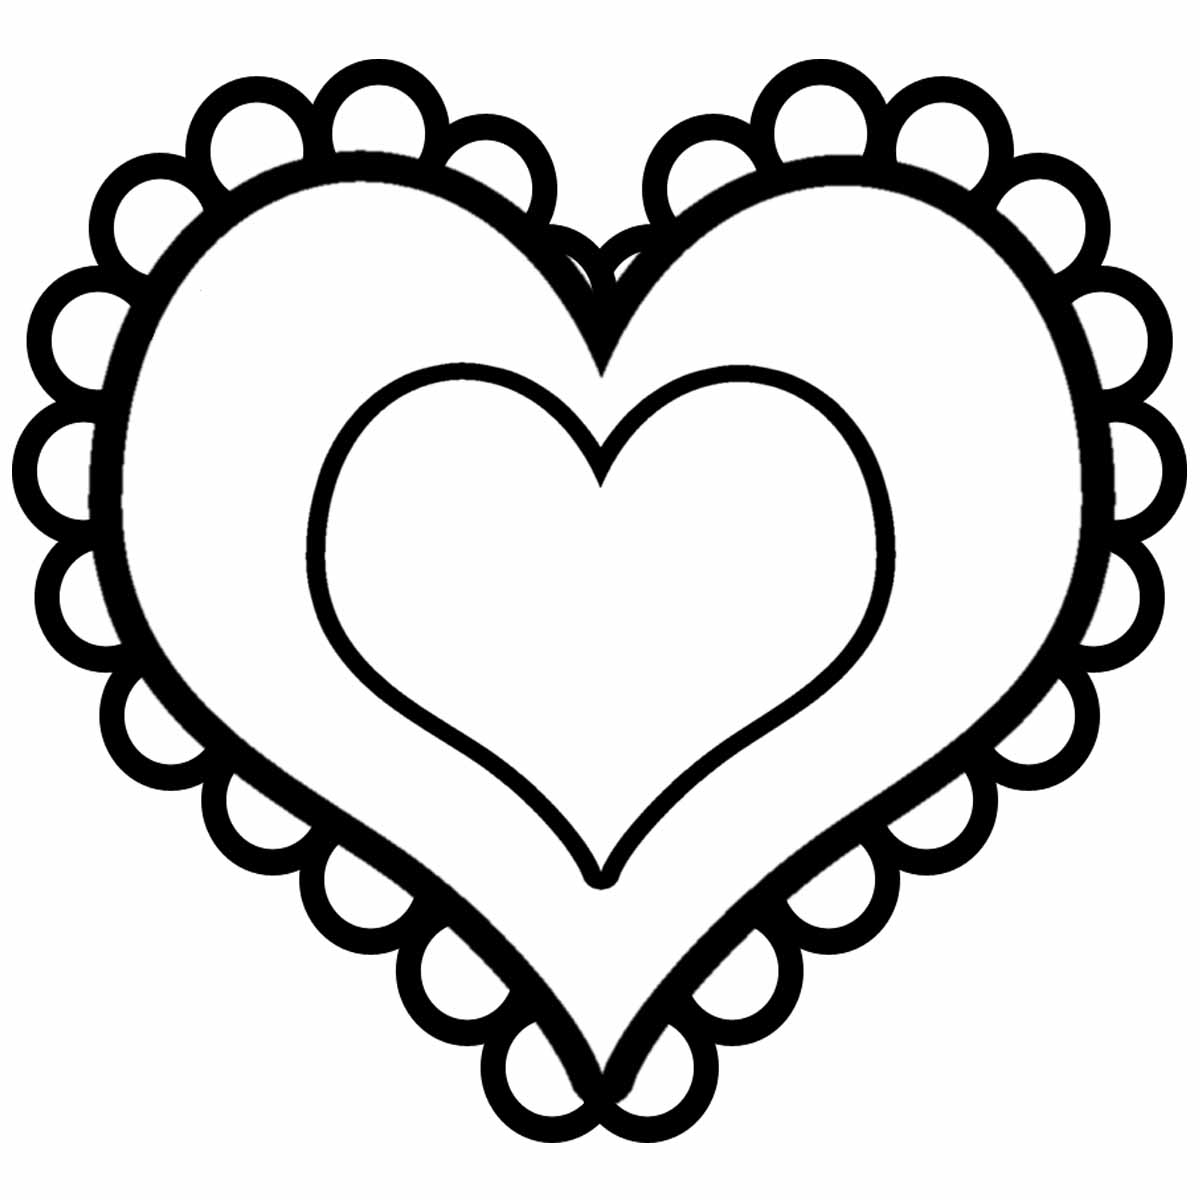 heart coloring book 35 free printable heart coloring pages coloring heart book